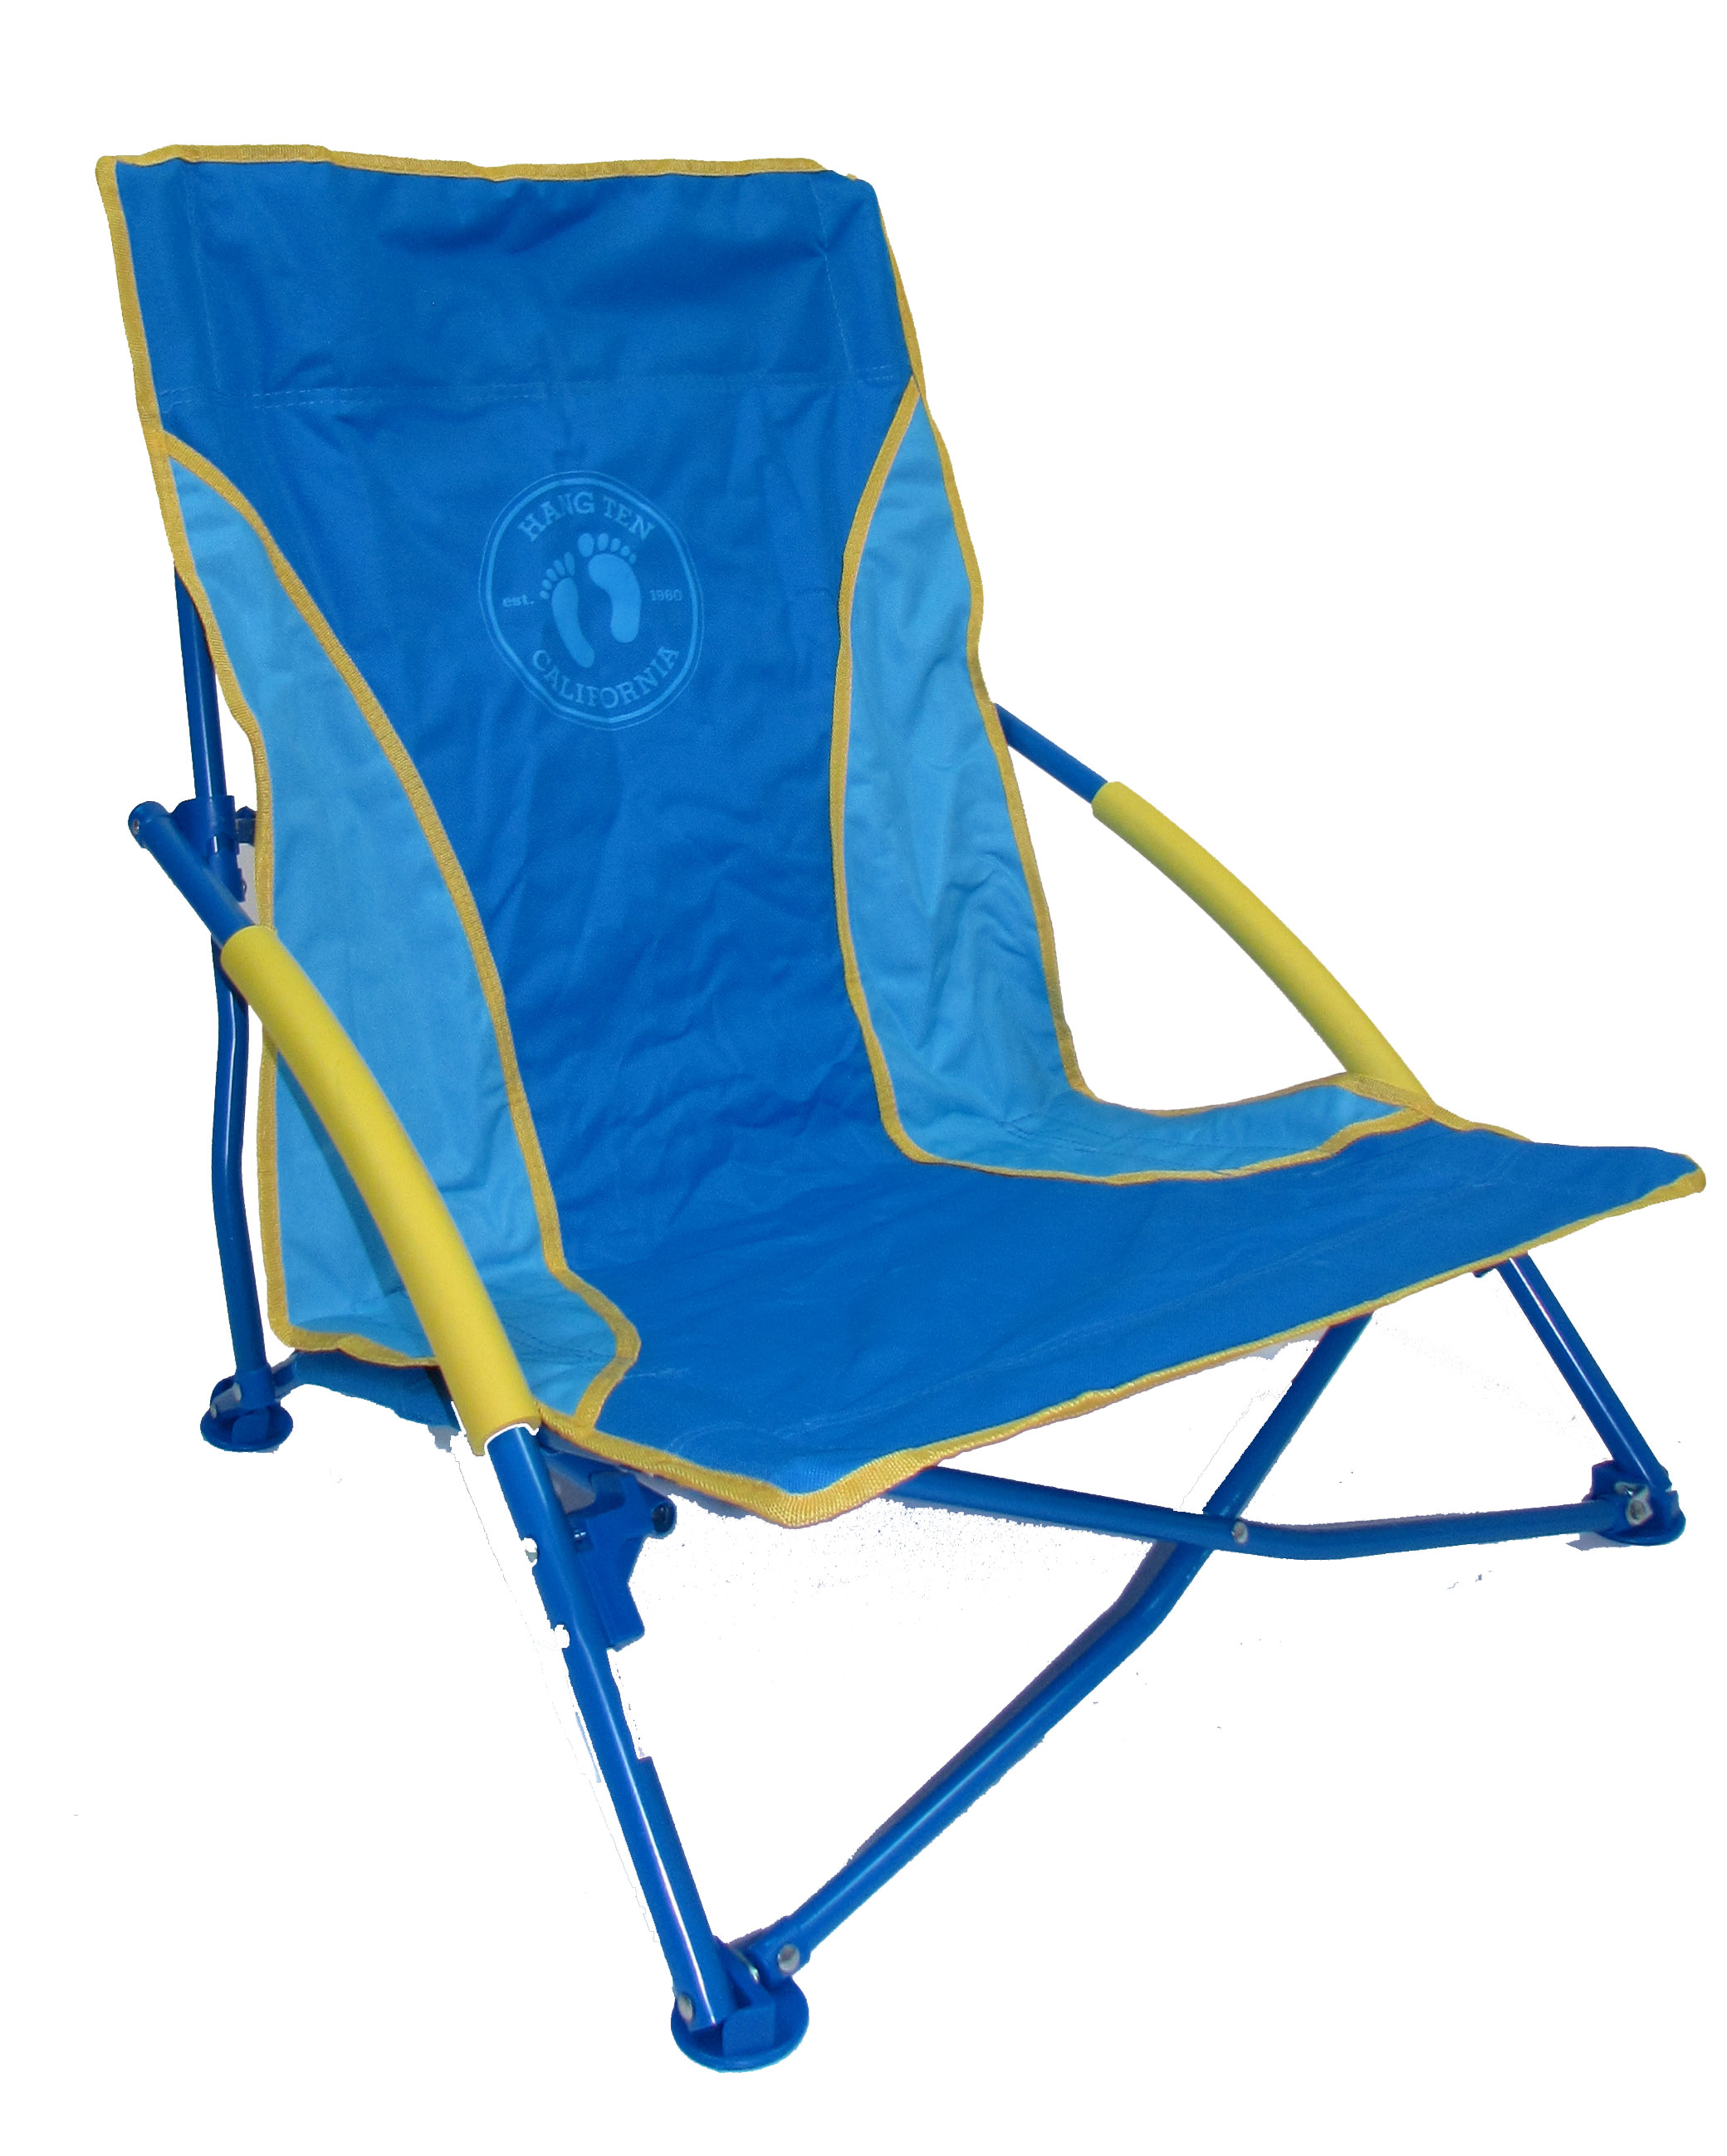 Surfer Chair Hang Ten by JGR Copa